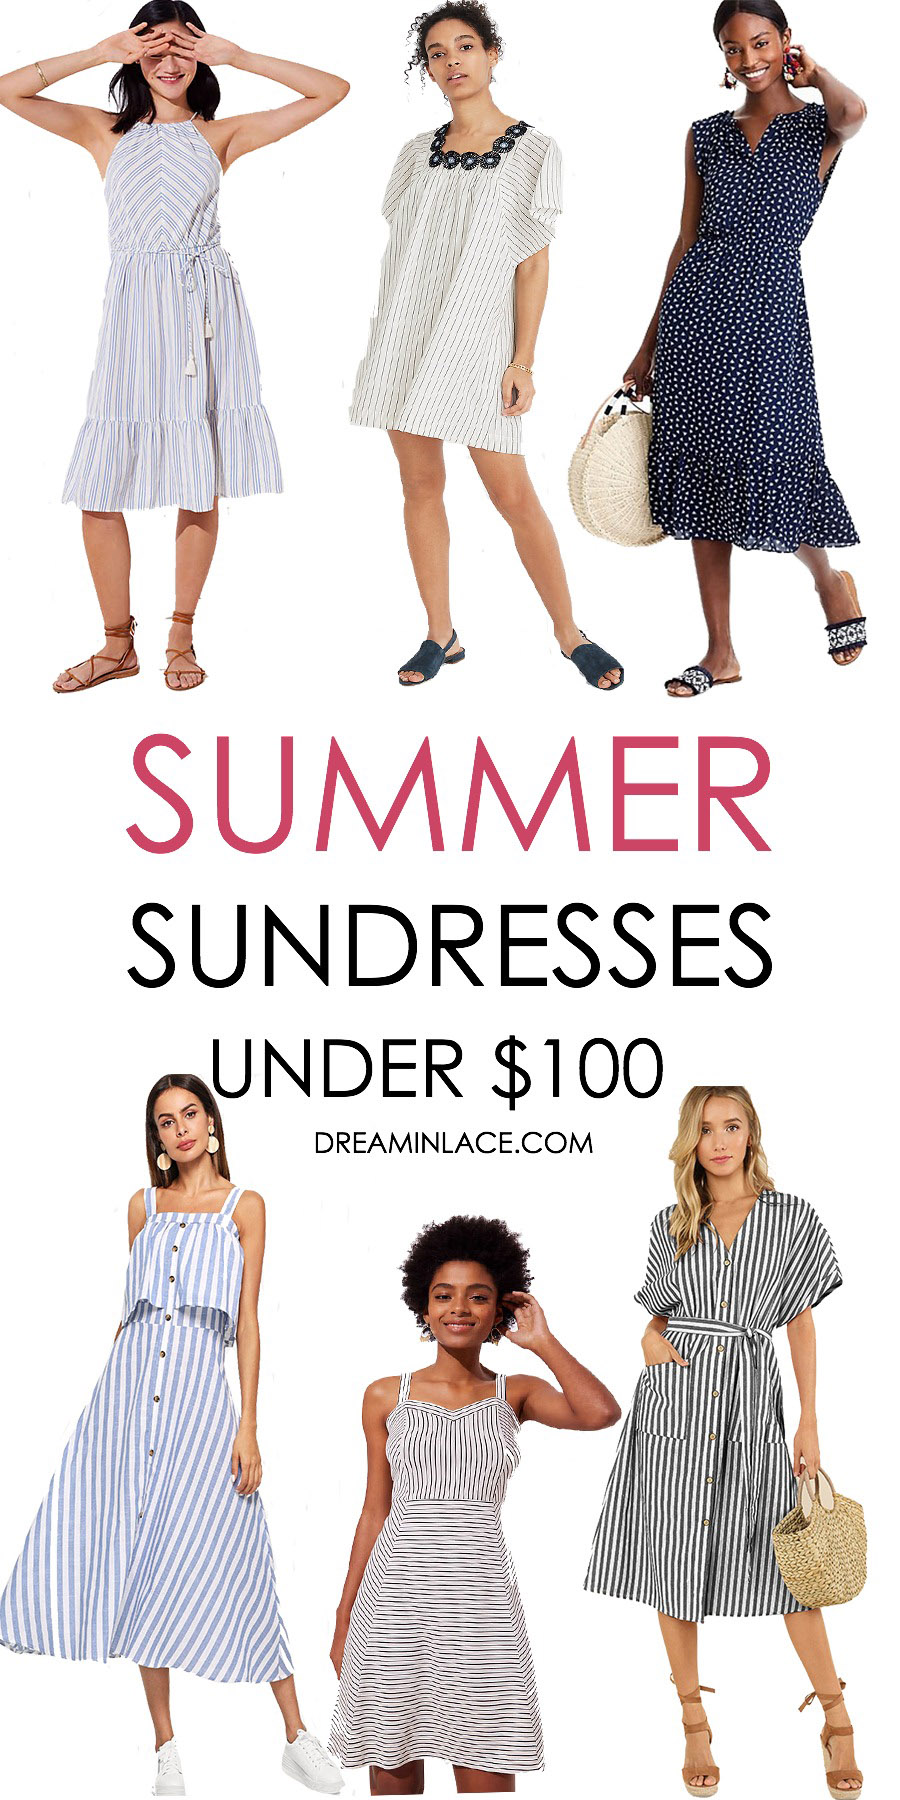 Summer Sundresses Under $100 I DreaminLace.com #SummerStyle #Fashionista #Style